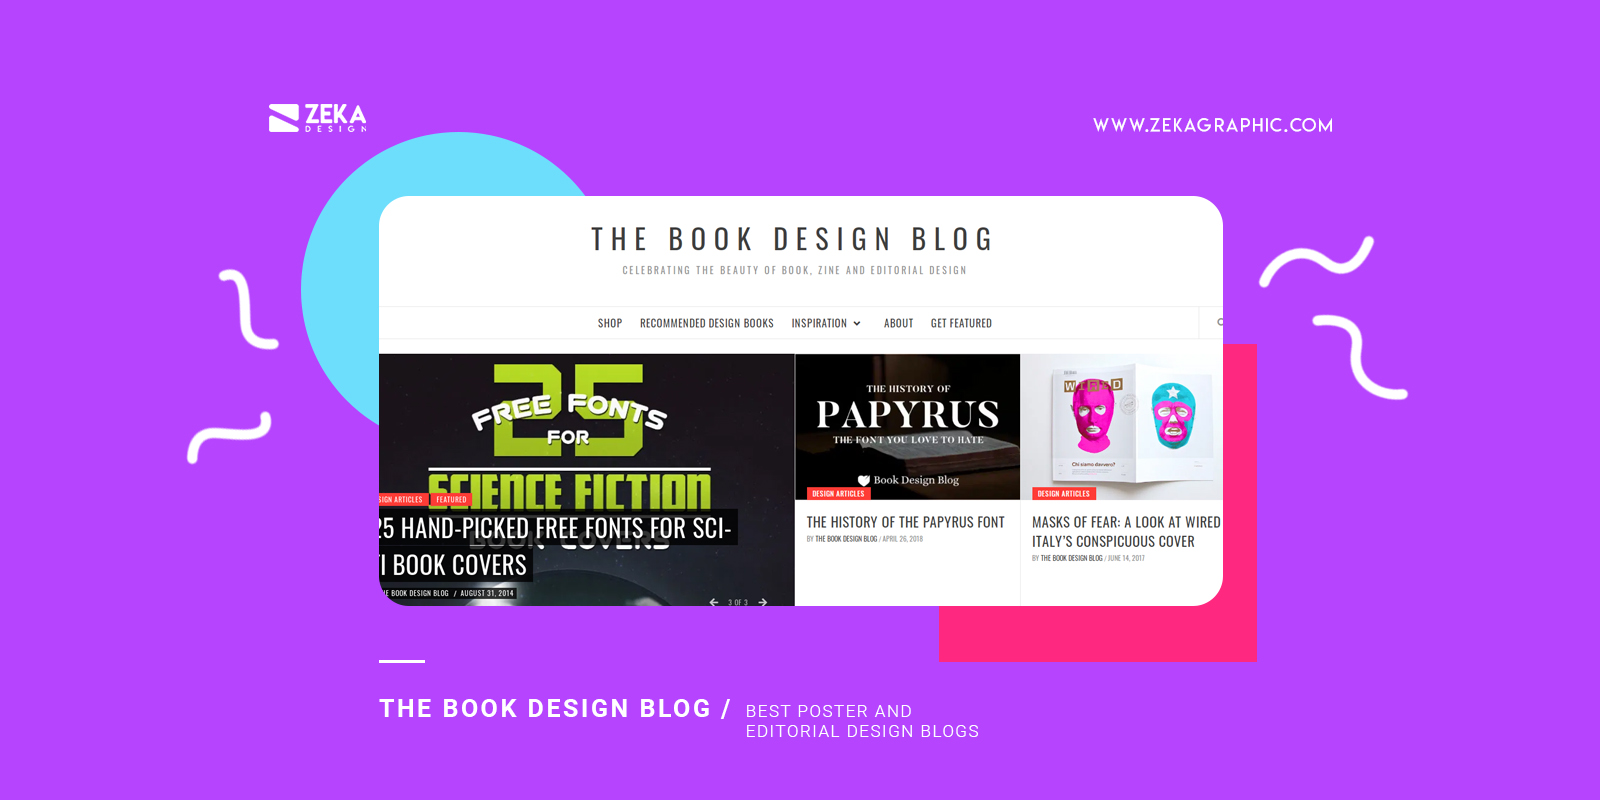 The book design blog Best poster and editorial design blogs